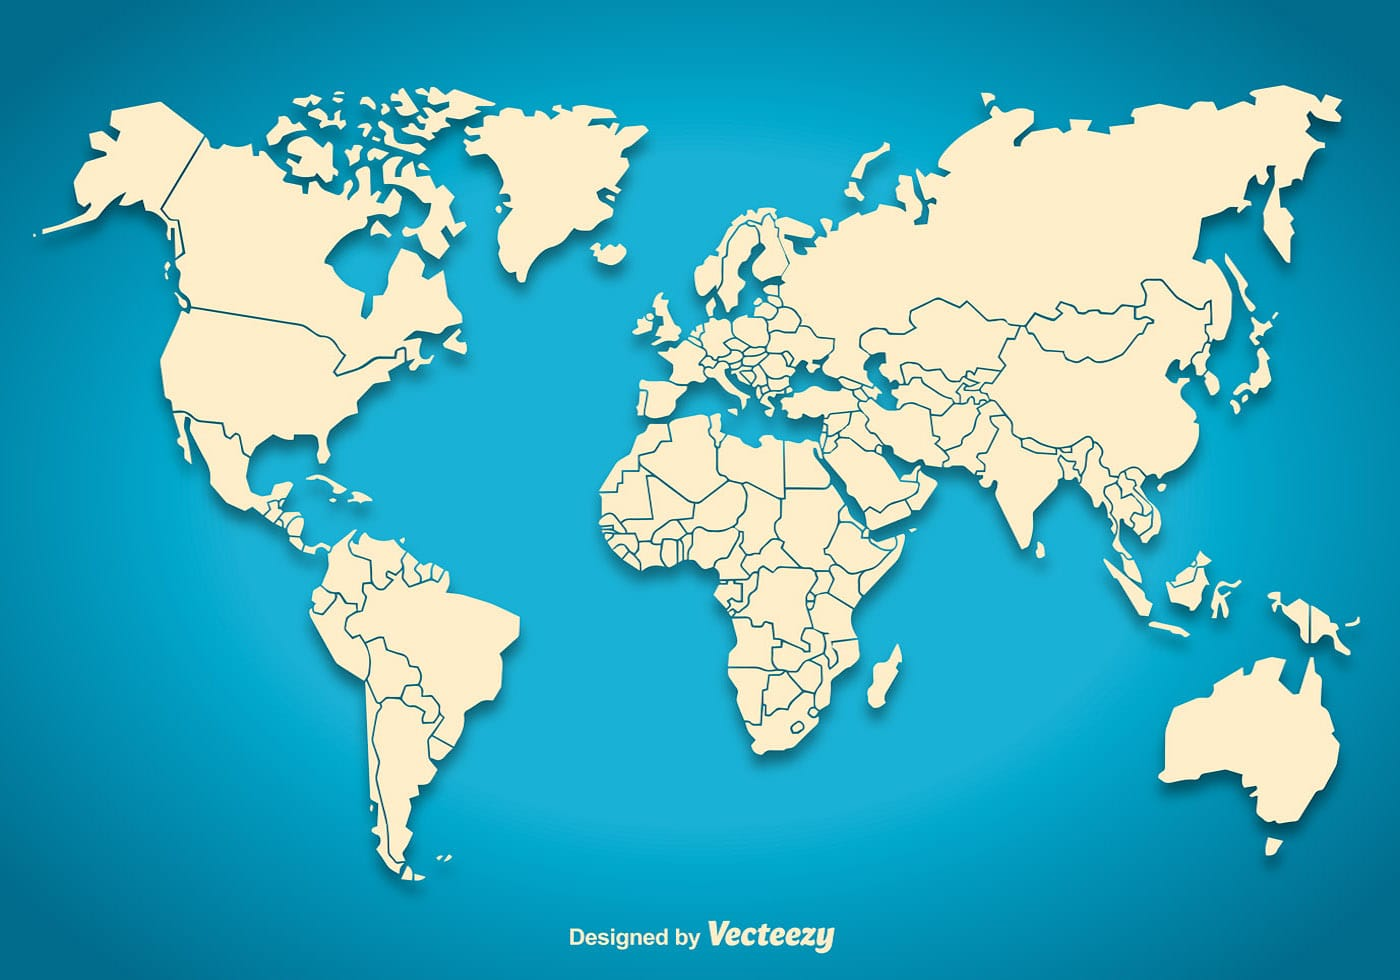 World map silhouette - Download Free Vectors, Clipart Graphics & Vector Art